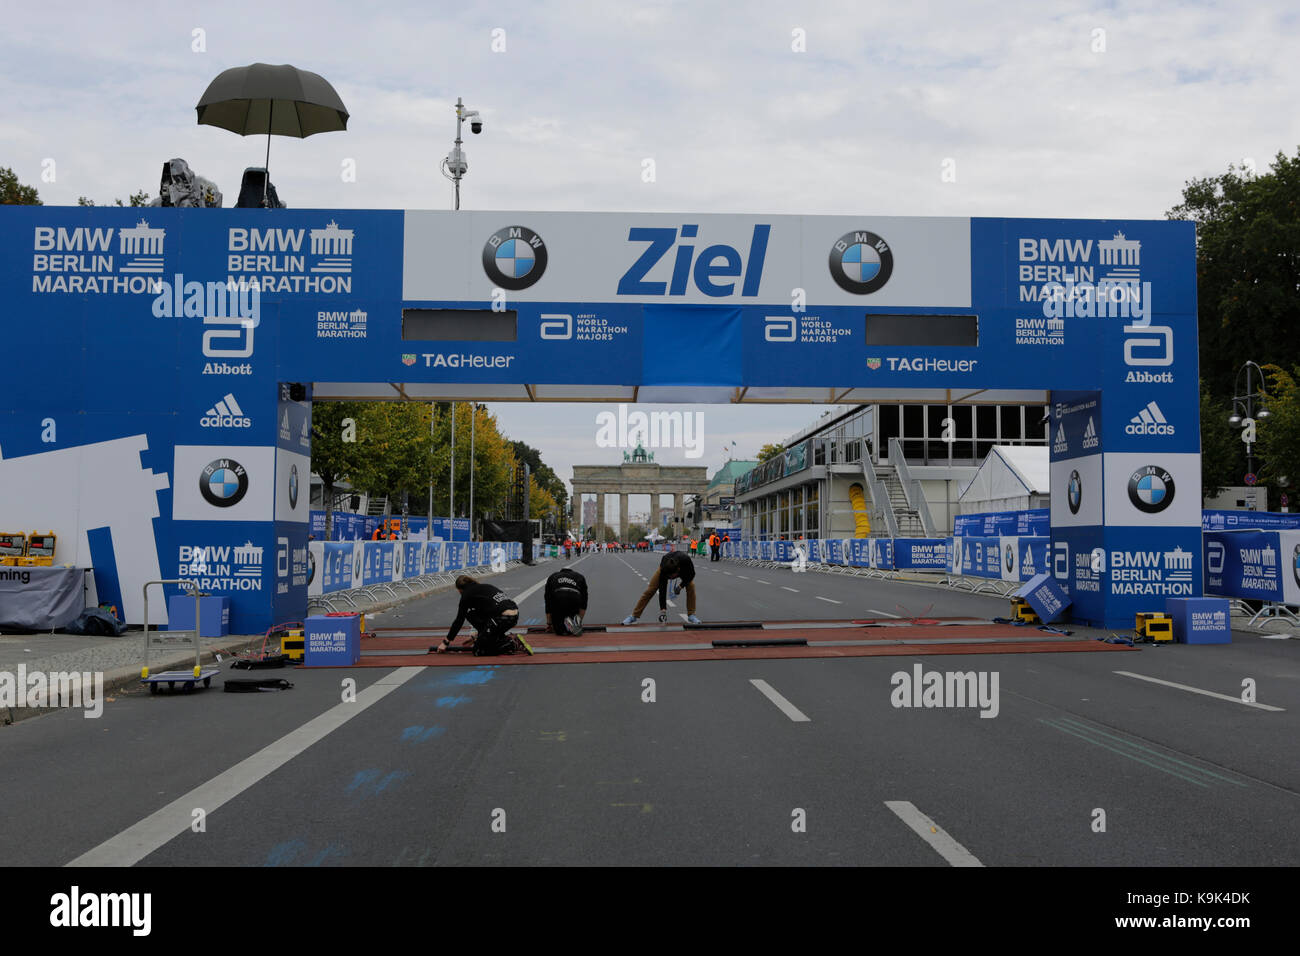 Berlin, Germany. 23rd September 2017. Workers add the finishing touches to the finishing line. The Brandenburg Gate can be seen in the background. Over 5,500 skater took part in the 2017 BMW Berlin Marathon Inline skating race, a day ahead of the  Marathon race. Bart Swings from Belgium won the race in 58:42 for the 5th year in a row. Credit: Michael Debets/Alamy Live News Stock Photo